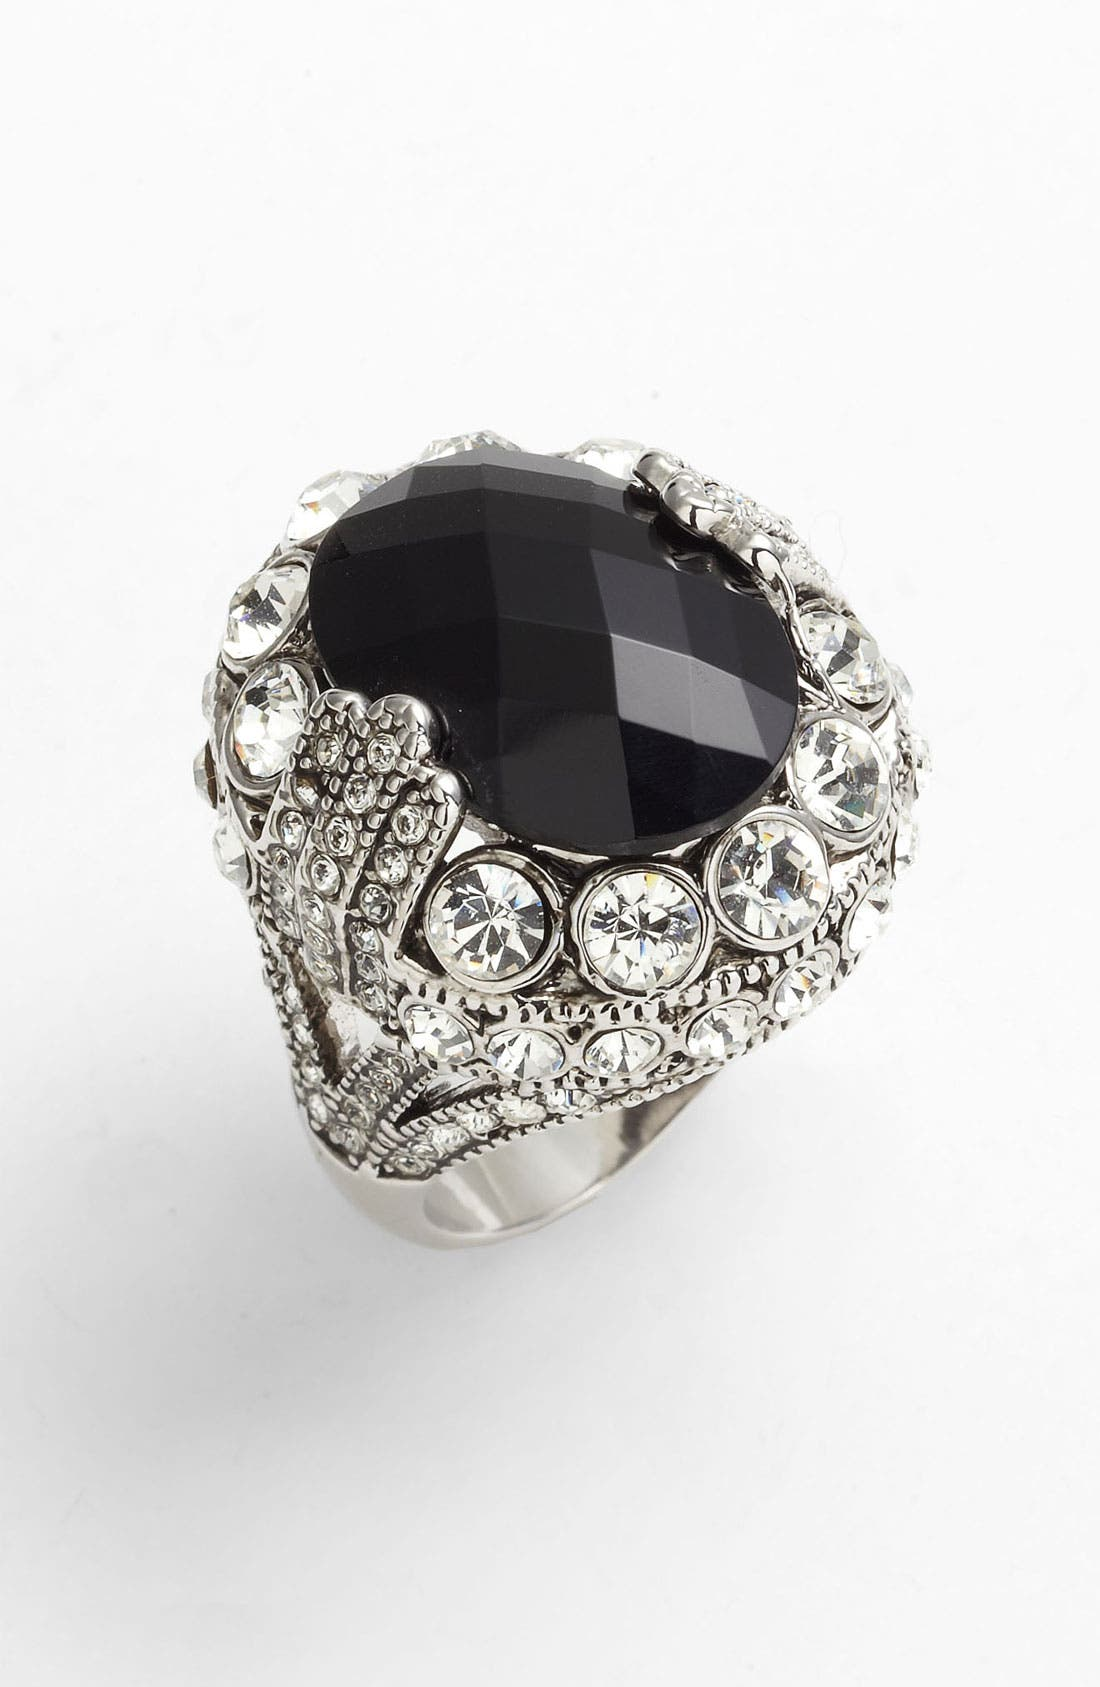 Main Image - Ariella Collection Cocktail Ring